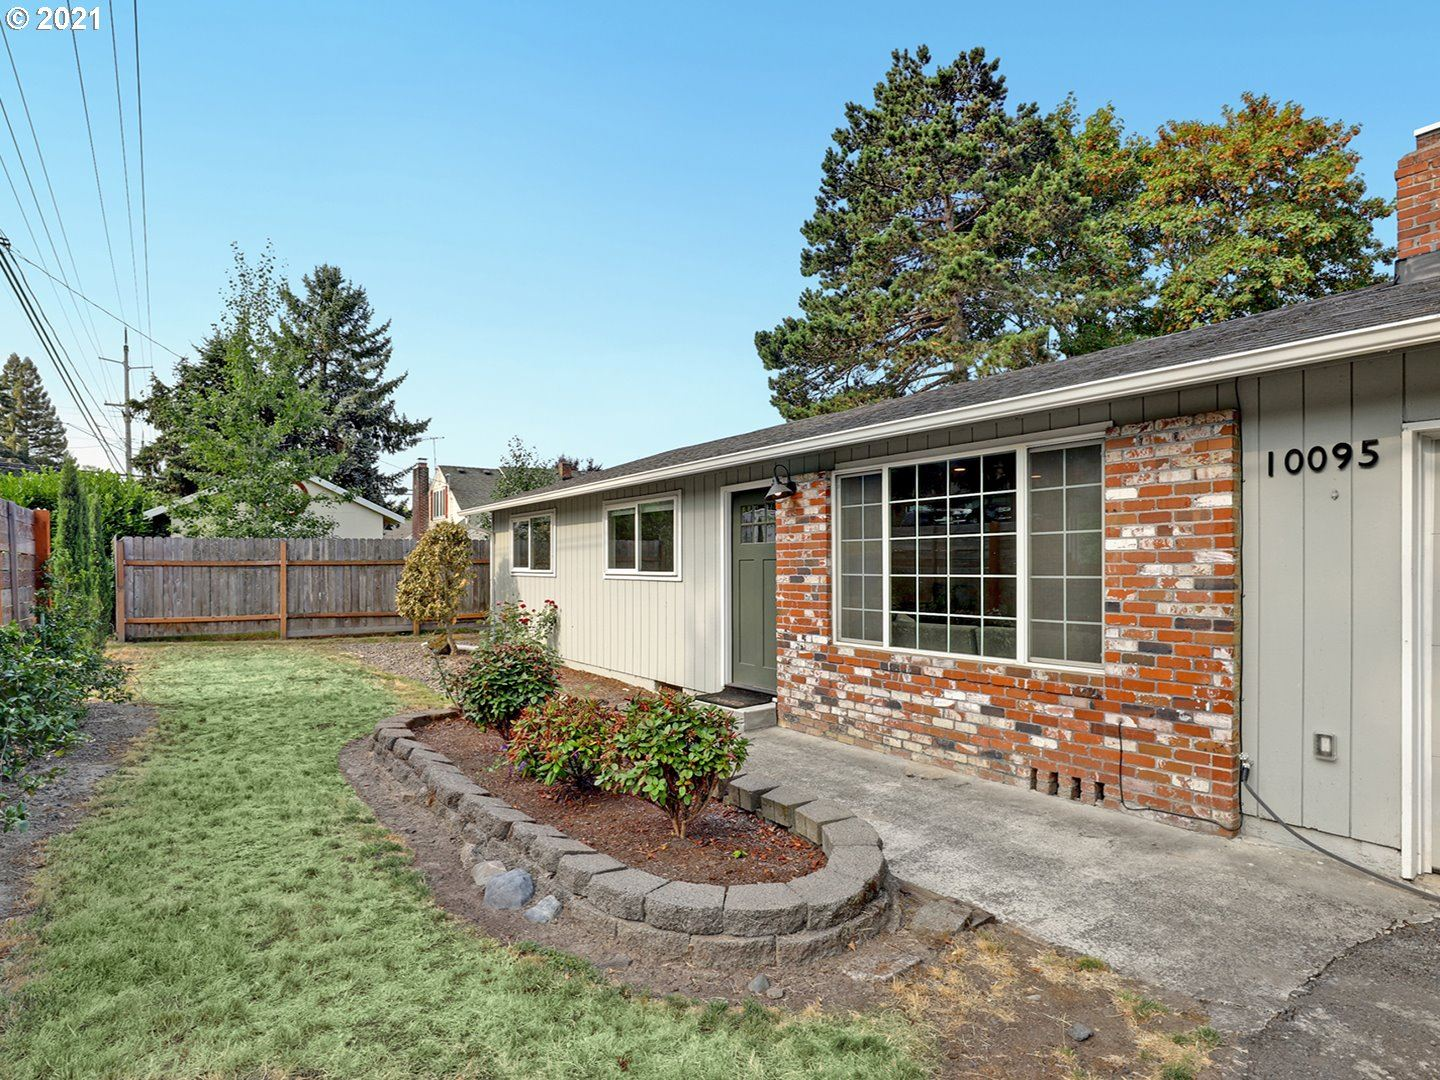 10095 SW 80TH AVE, Portland, OR 97223 - MLS#: 21048281